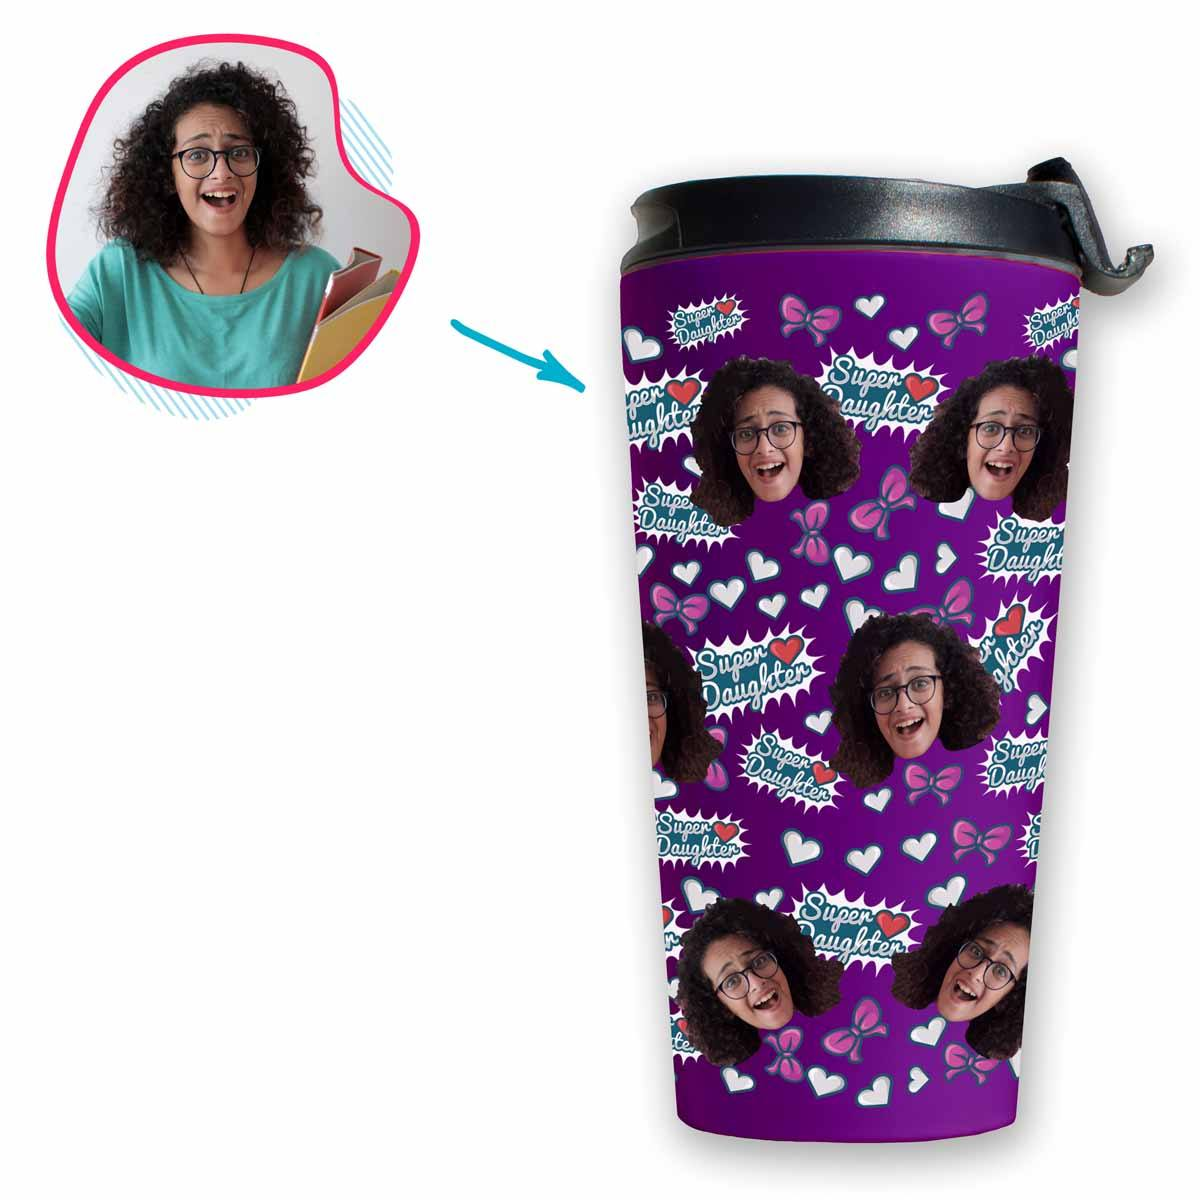 purple Super Daughter travel mug personalized with photo of face printed on it